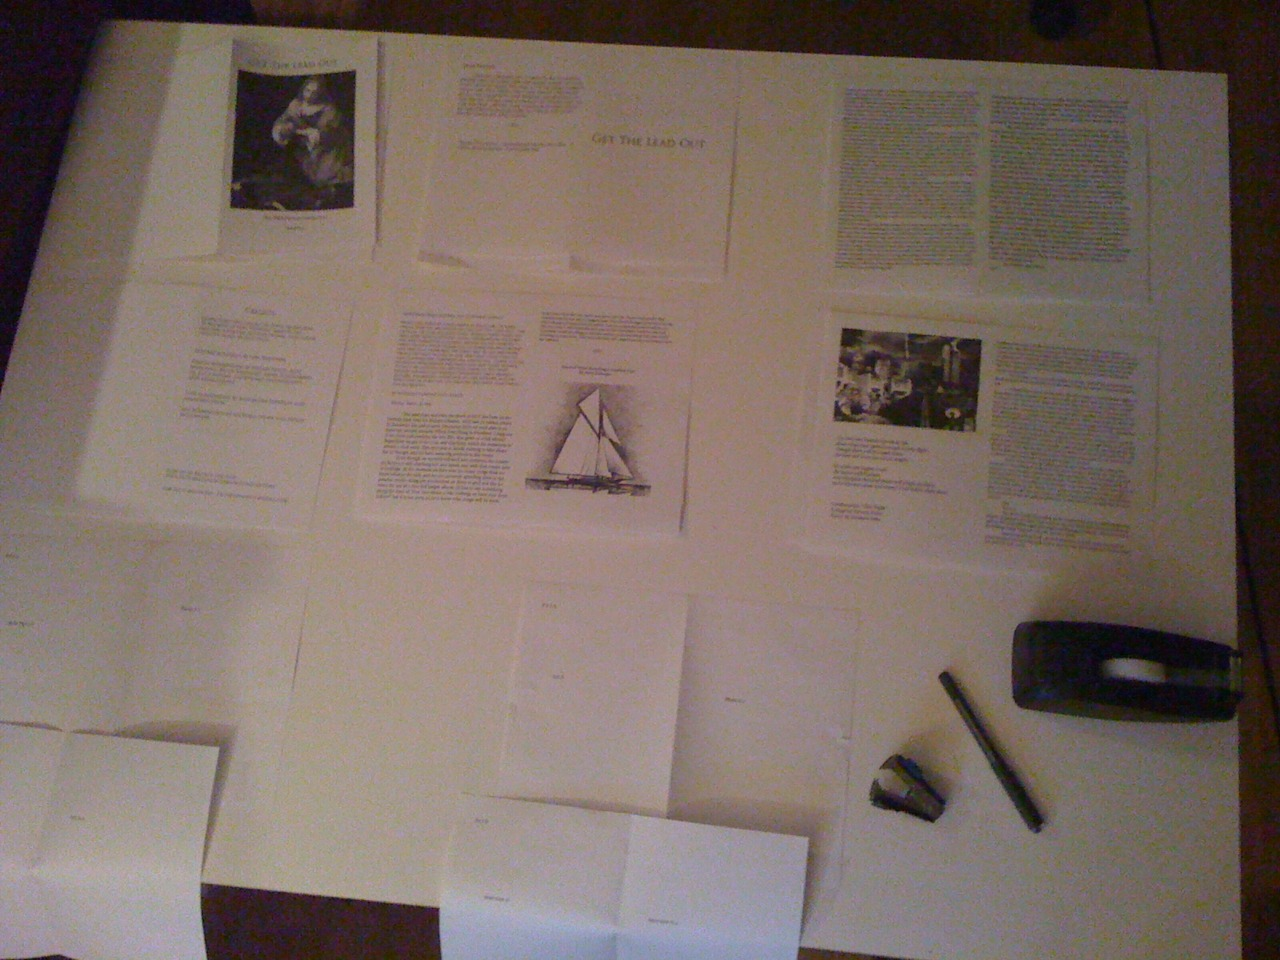 Finalizing the Zine format. Be sure to sign up for the first issue before it gets mailed out. www.pictureatlantic.com/mailing-listzine/